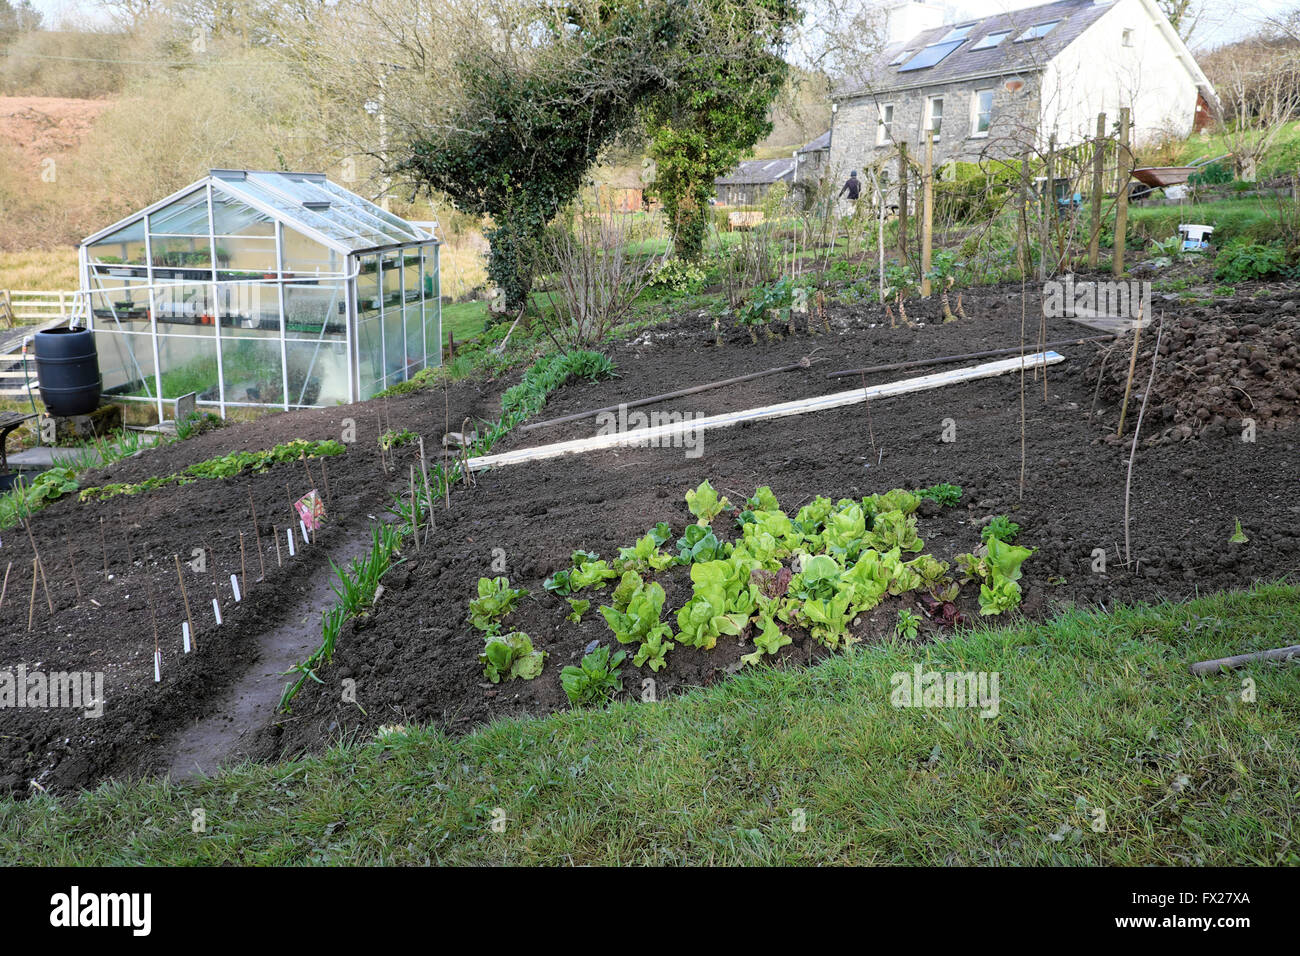 View of early lettuces growing outside in a kitchen garden veg plot patch in springtime Carmarthenshire, Wales UK - Stock Image